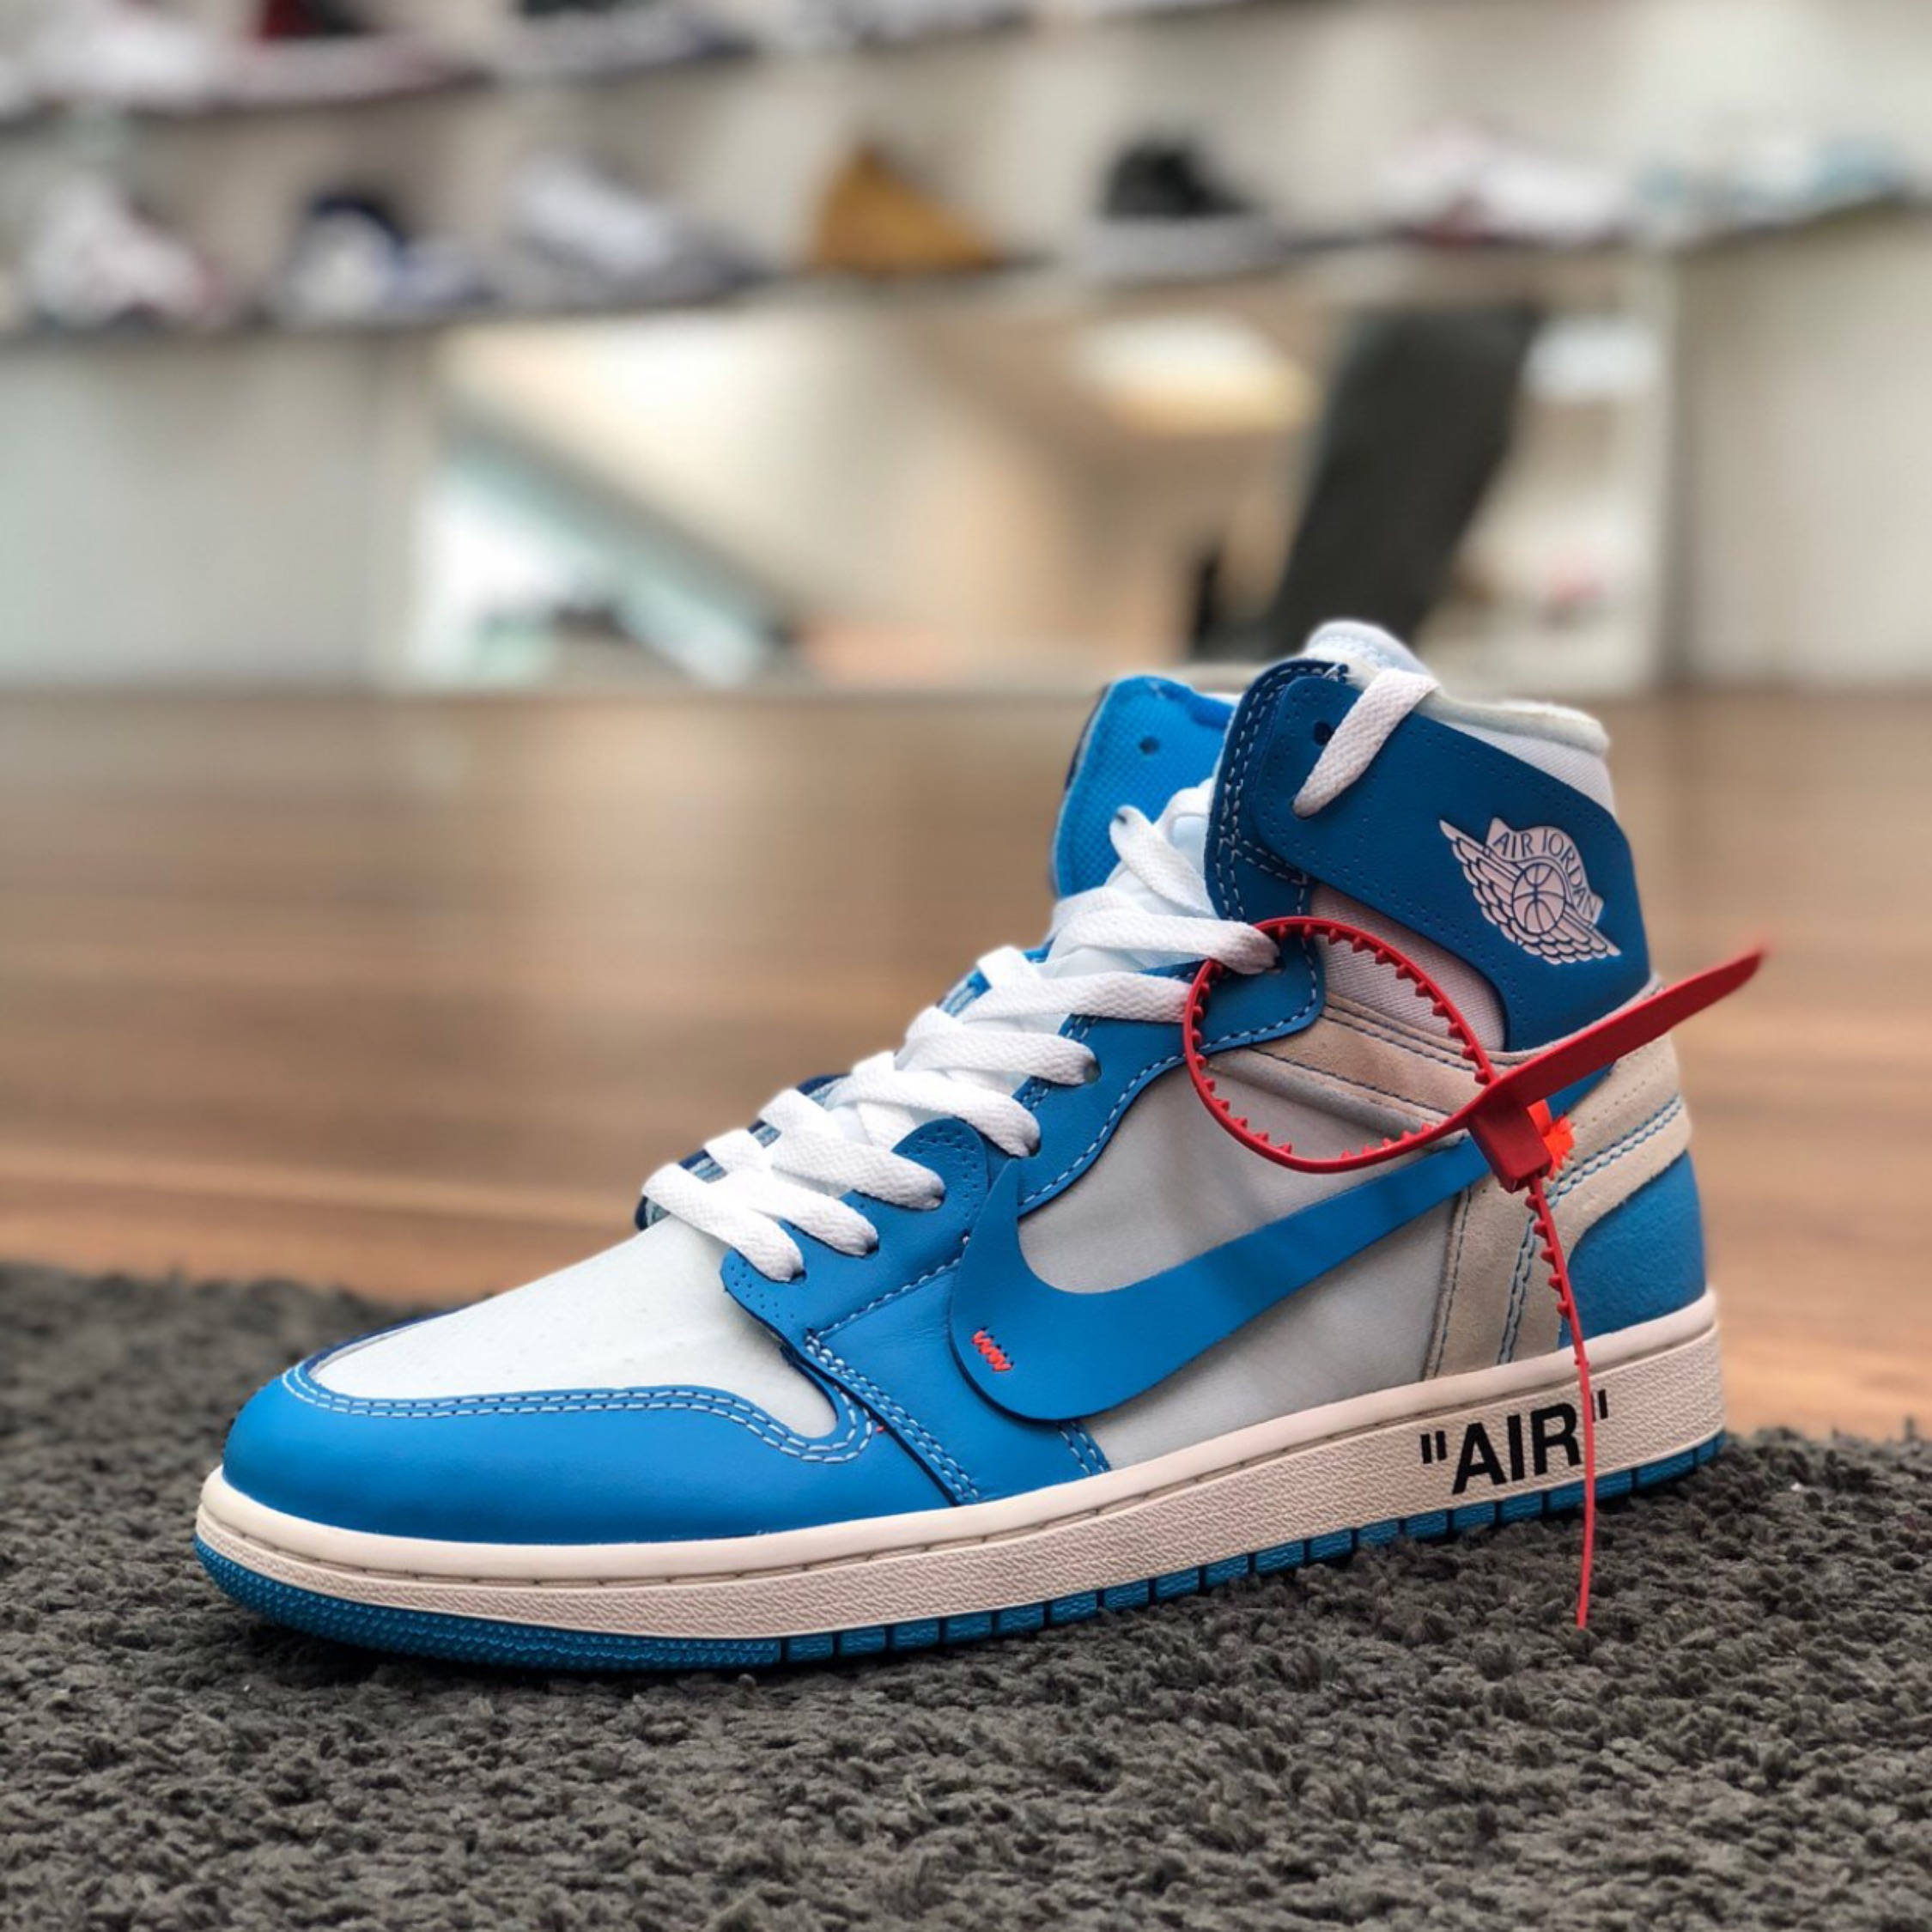 the latest 8d7d3 2928f Off White X Jordan 1 Unc Blue